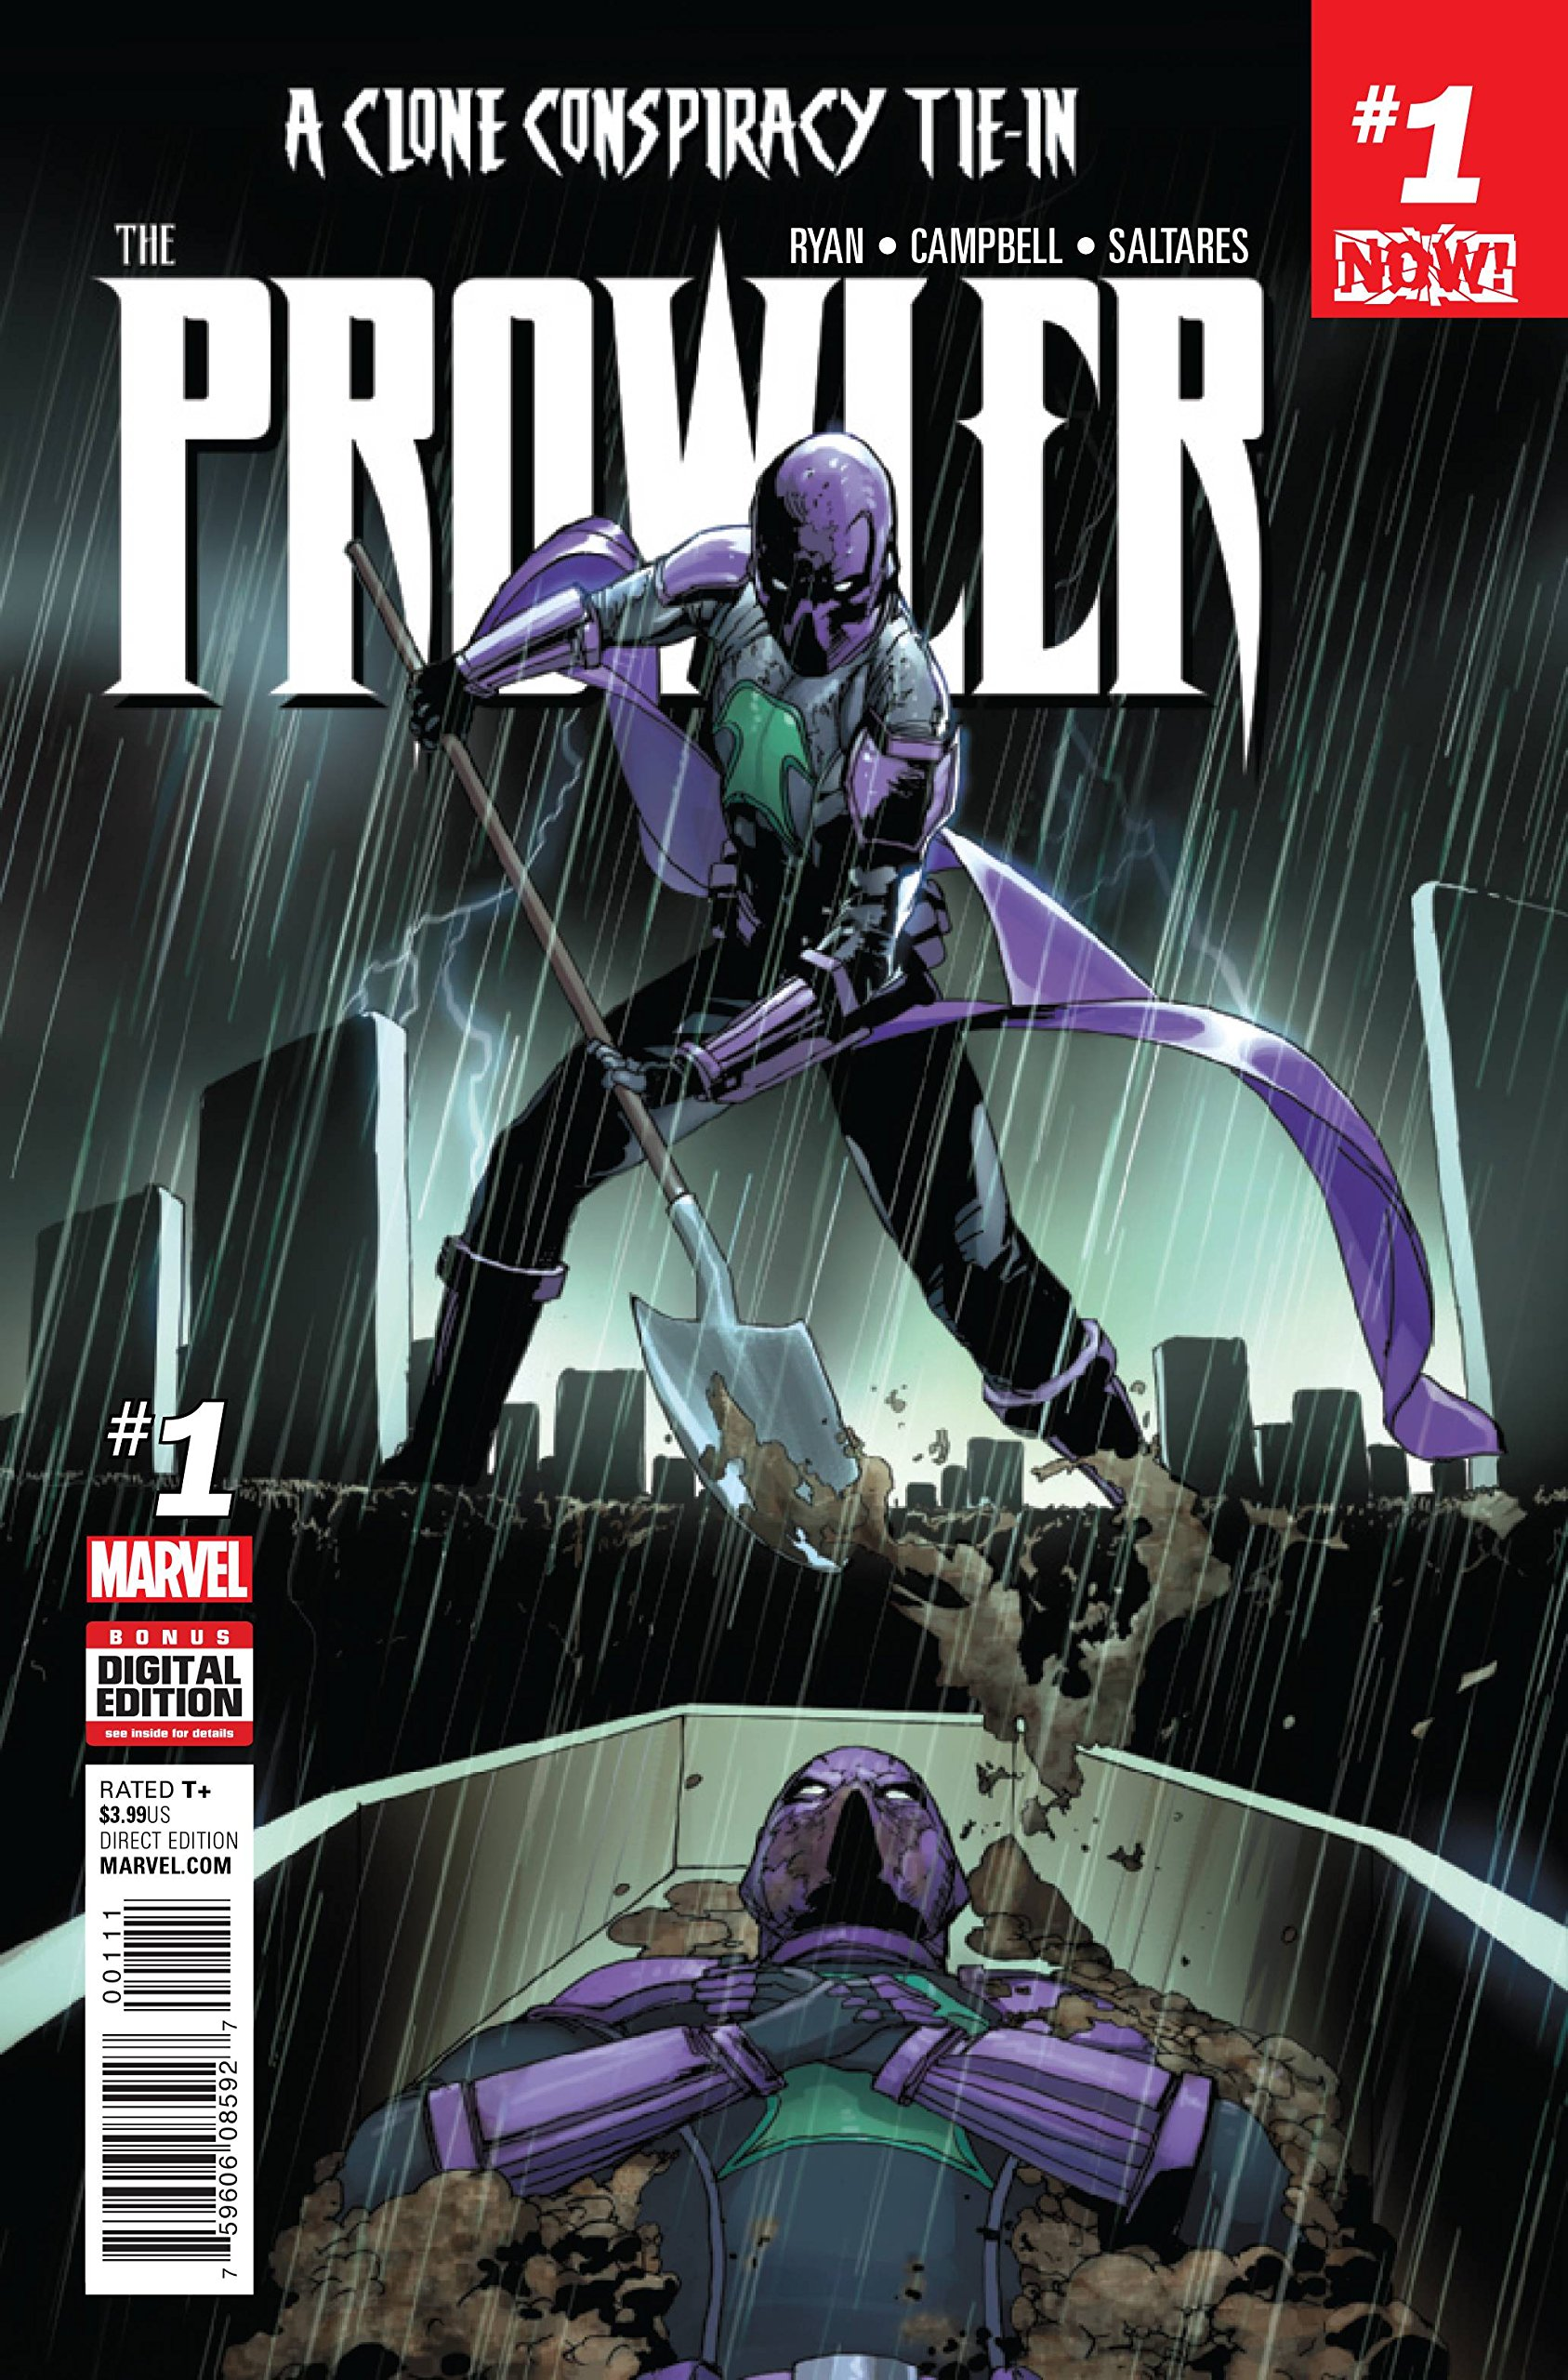 Read Online PROWLER #1 NOW (CLONE CONSPIRACY TIE-IN) pdf epub